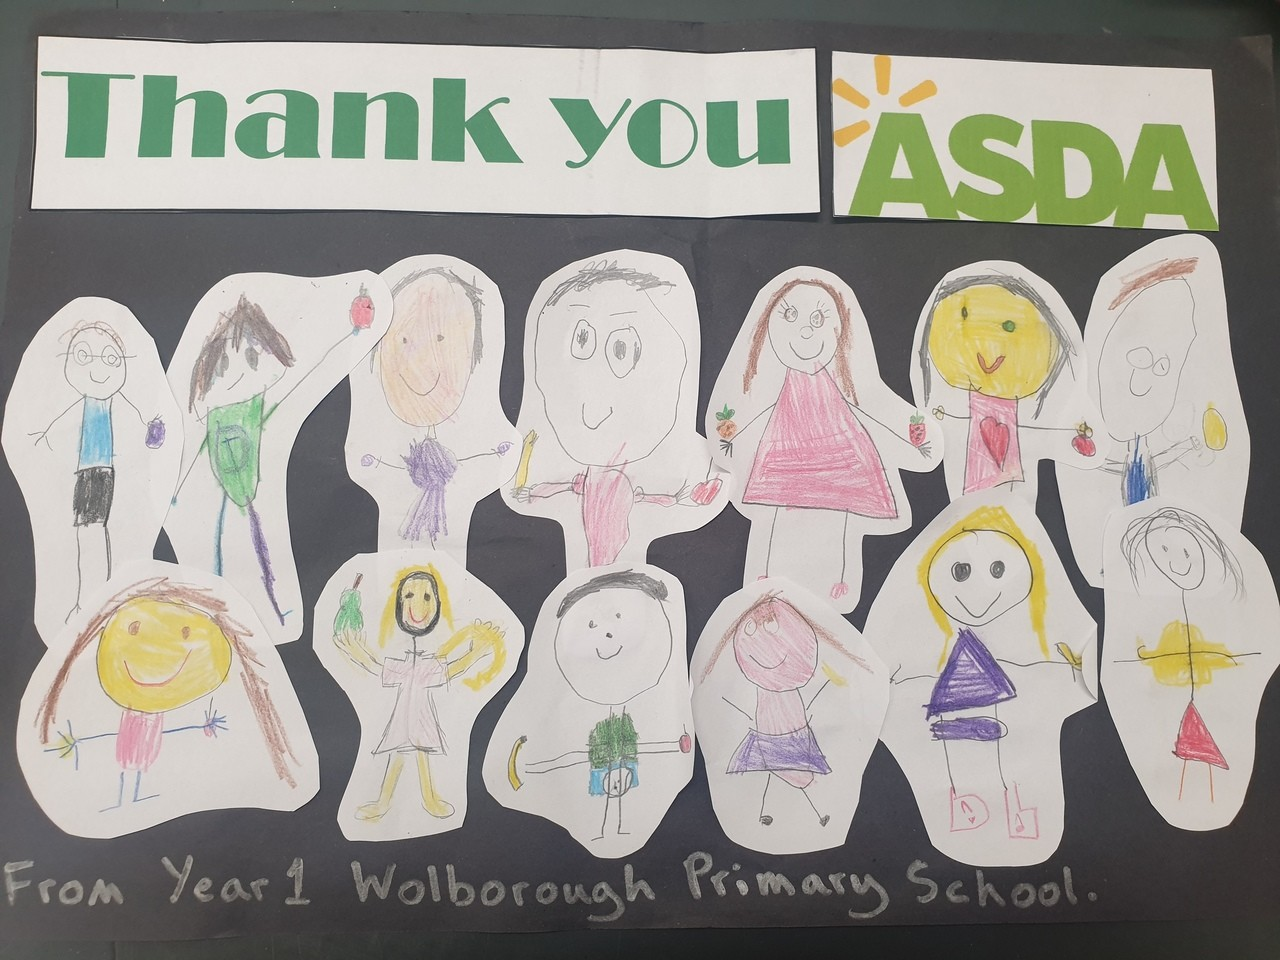 Thank you message from Wolborough Primary School | Asda Newton Abbot